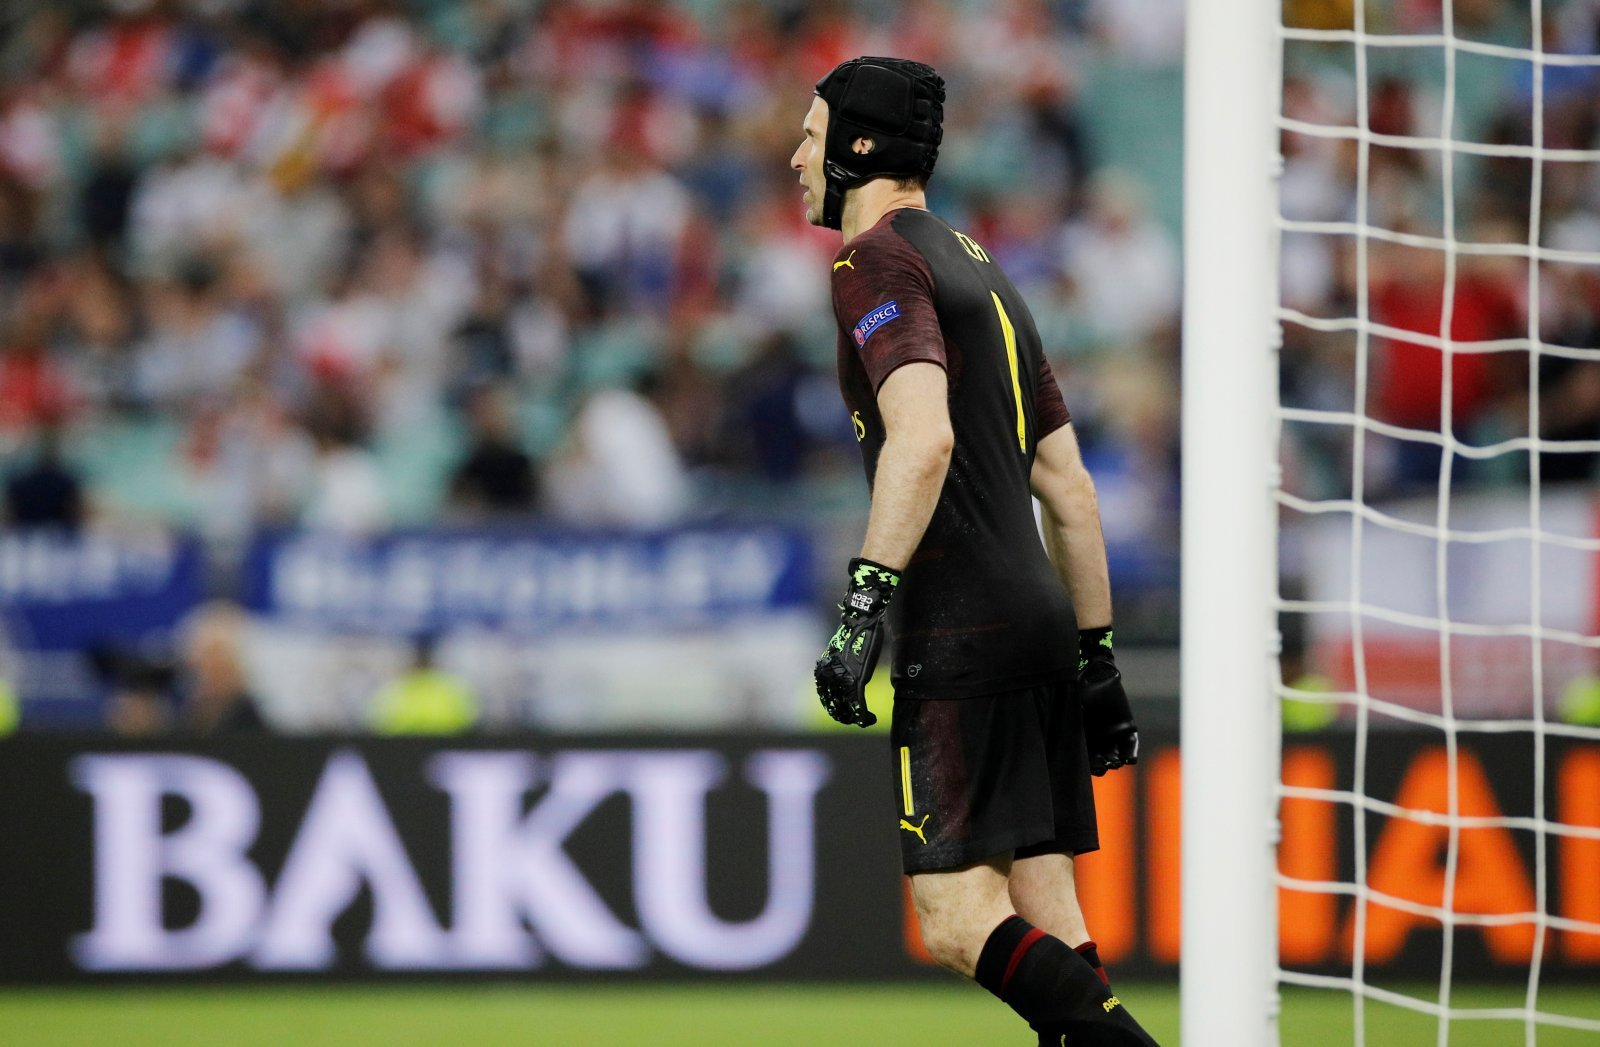 Unsung Hero: Arsenal were lucky to have Petr Cech but it was not reciprocated